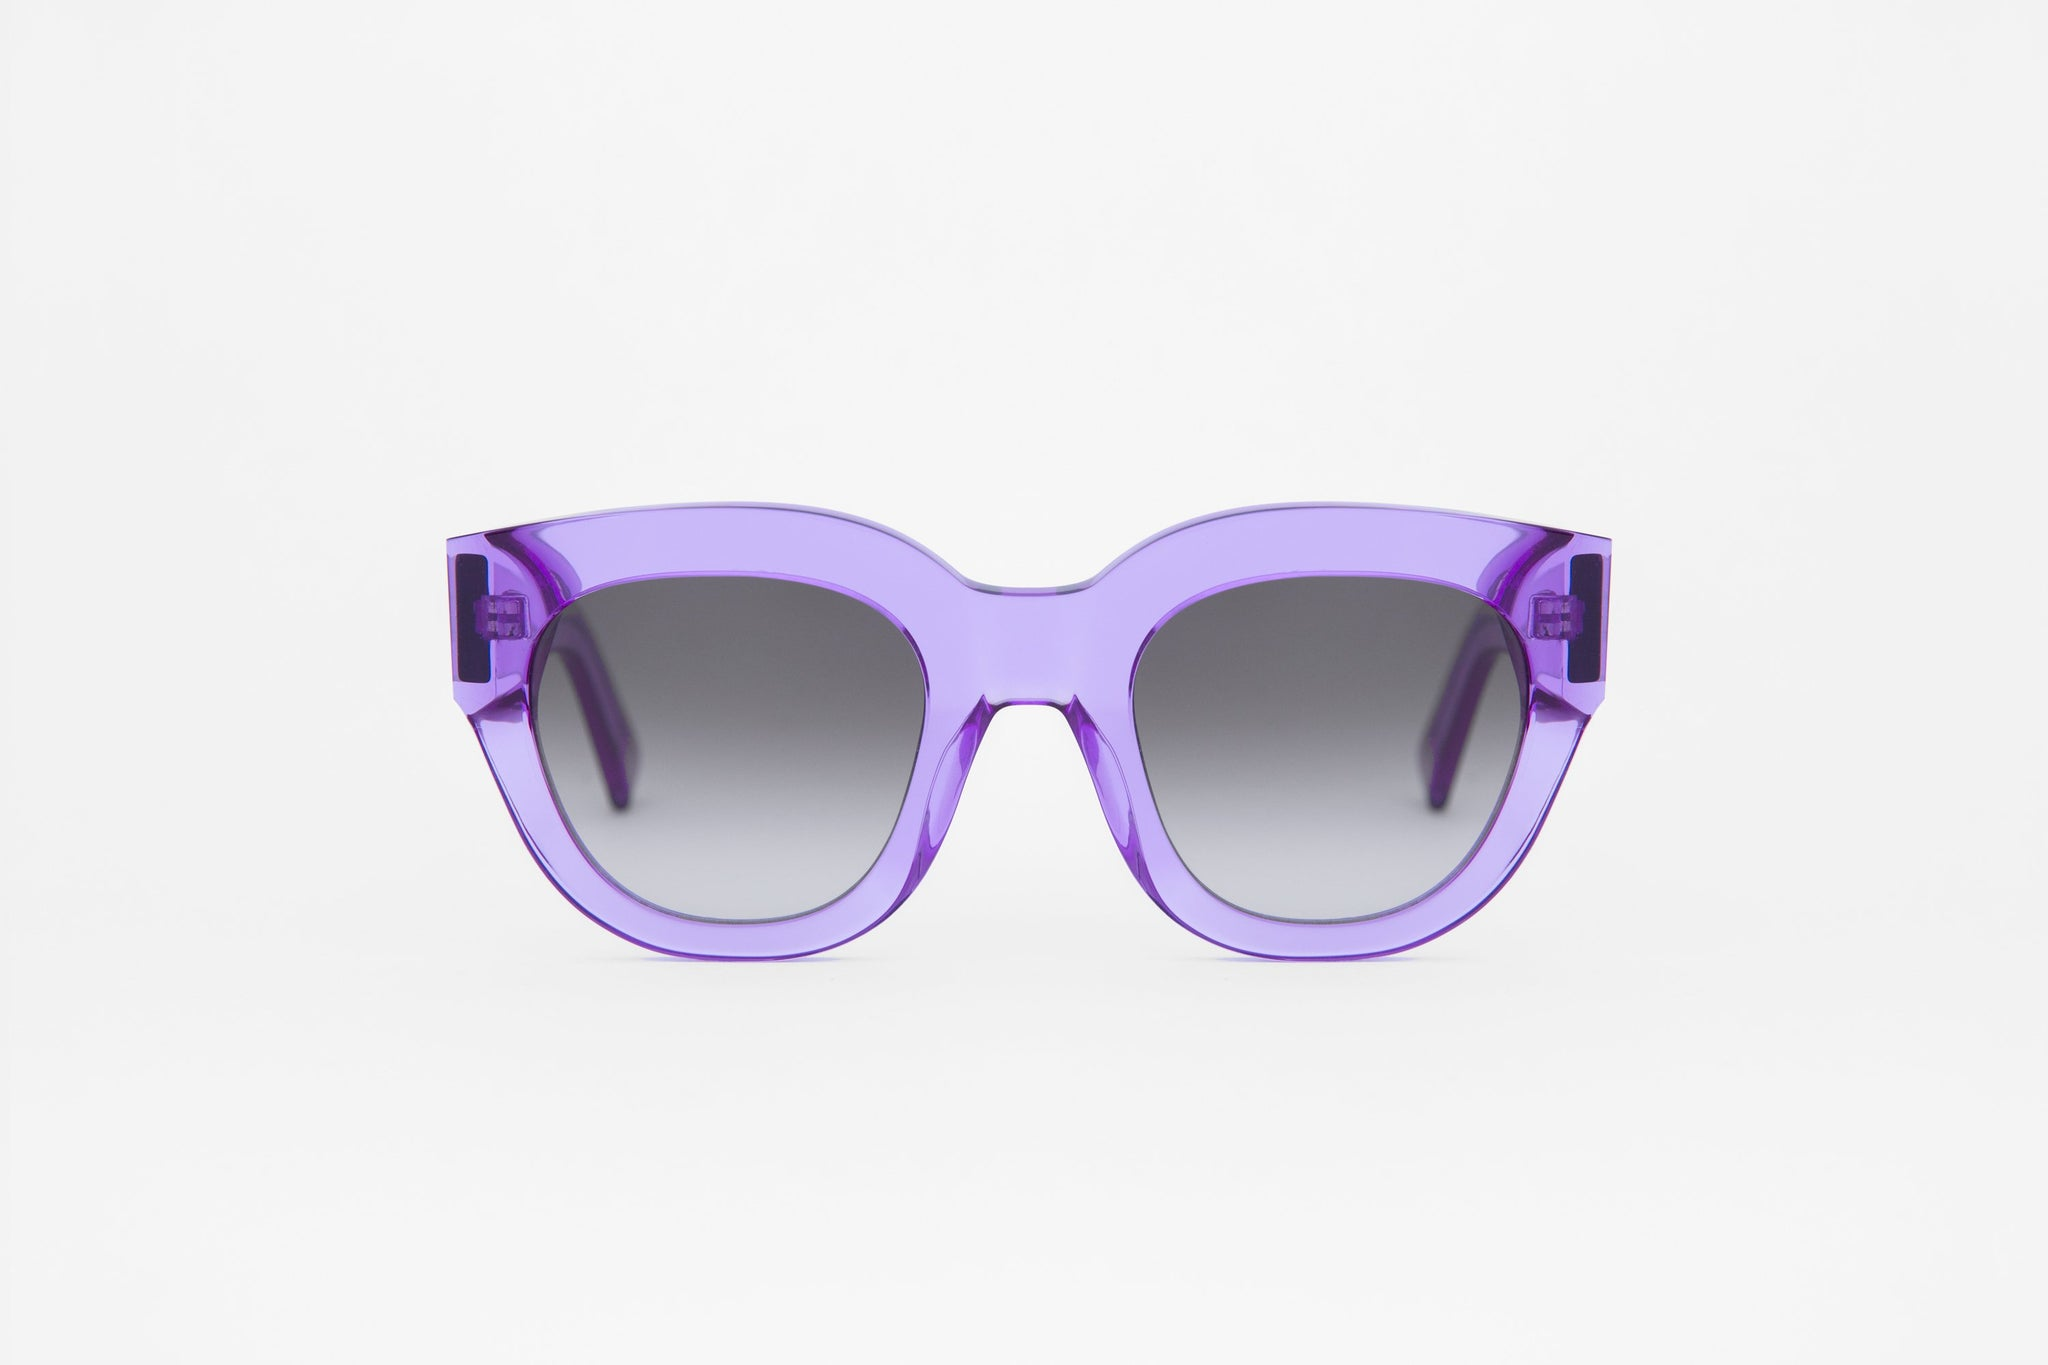 monokel eyewear sunglasses cleo clear purple